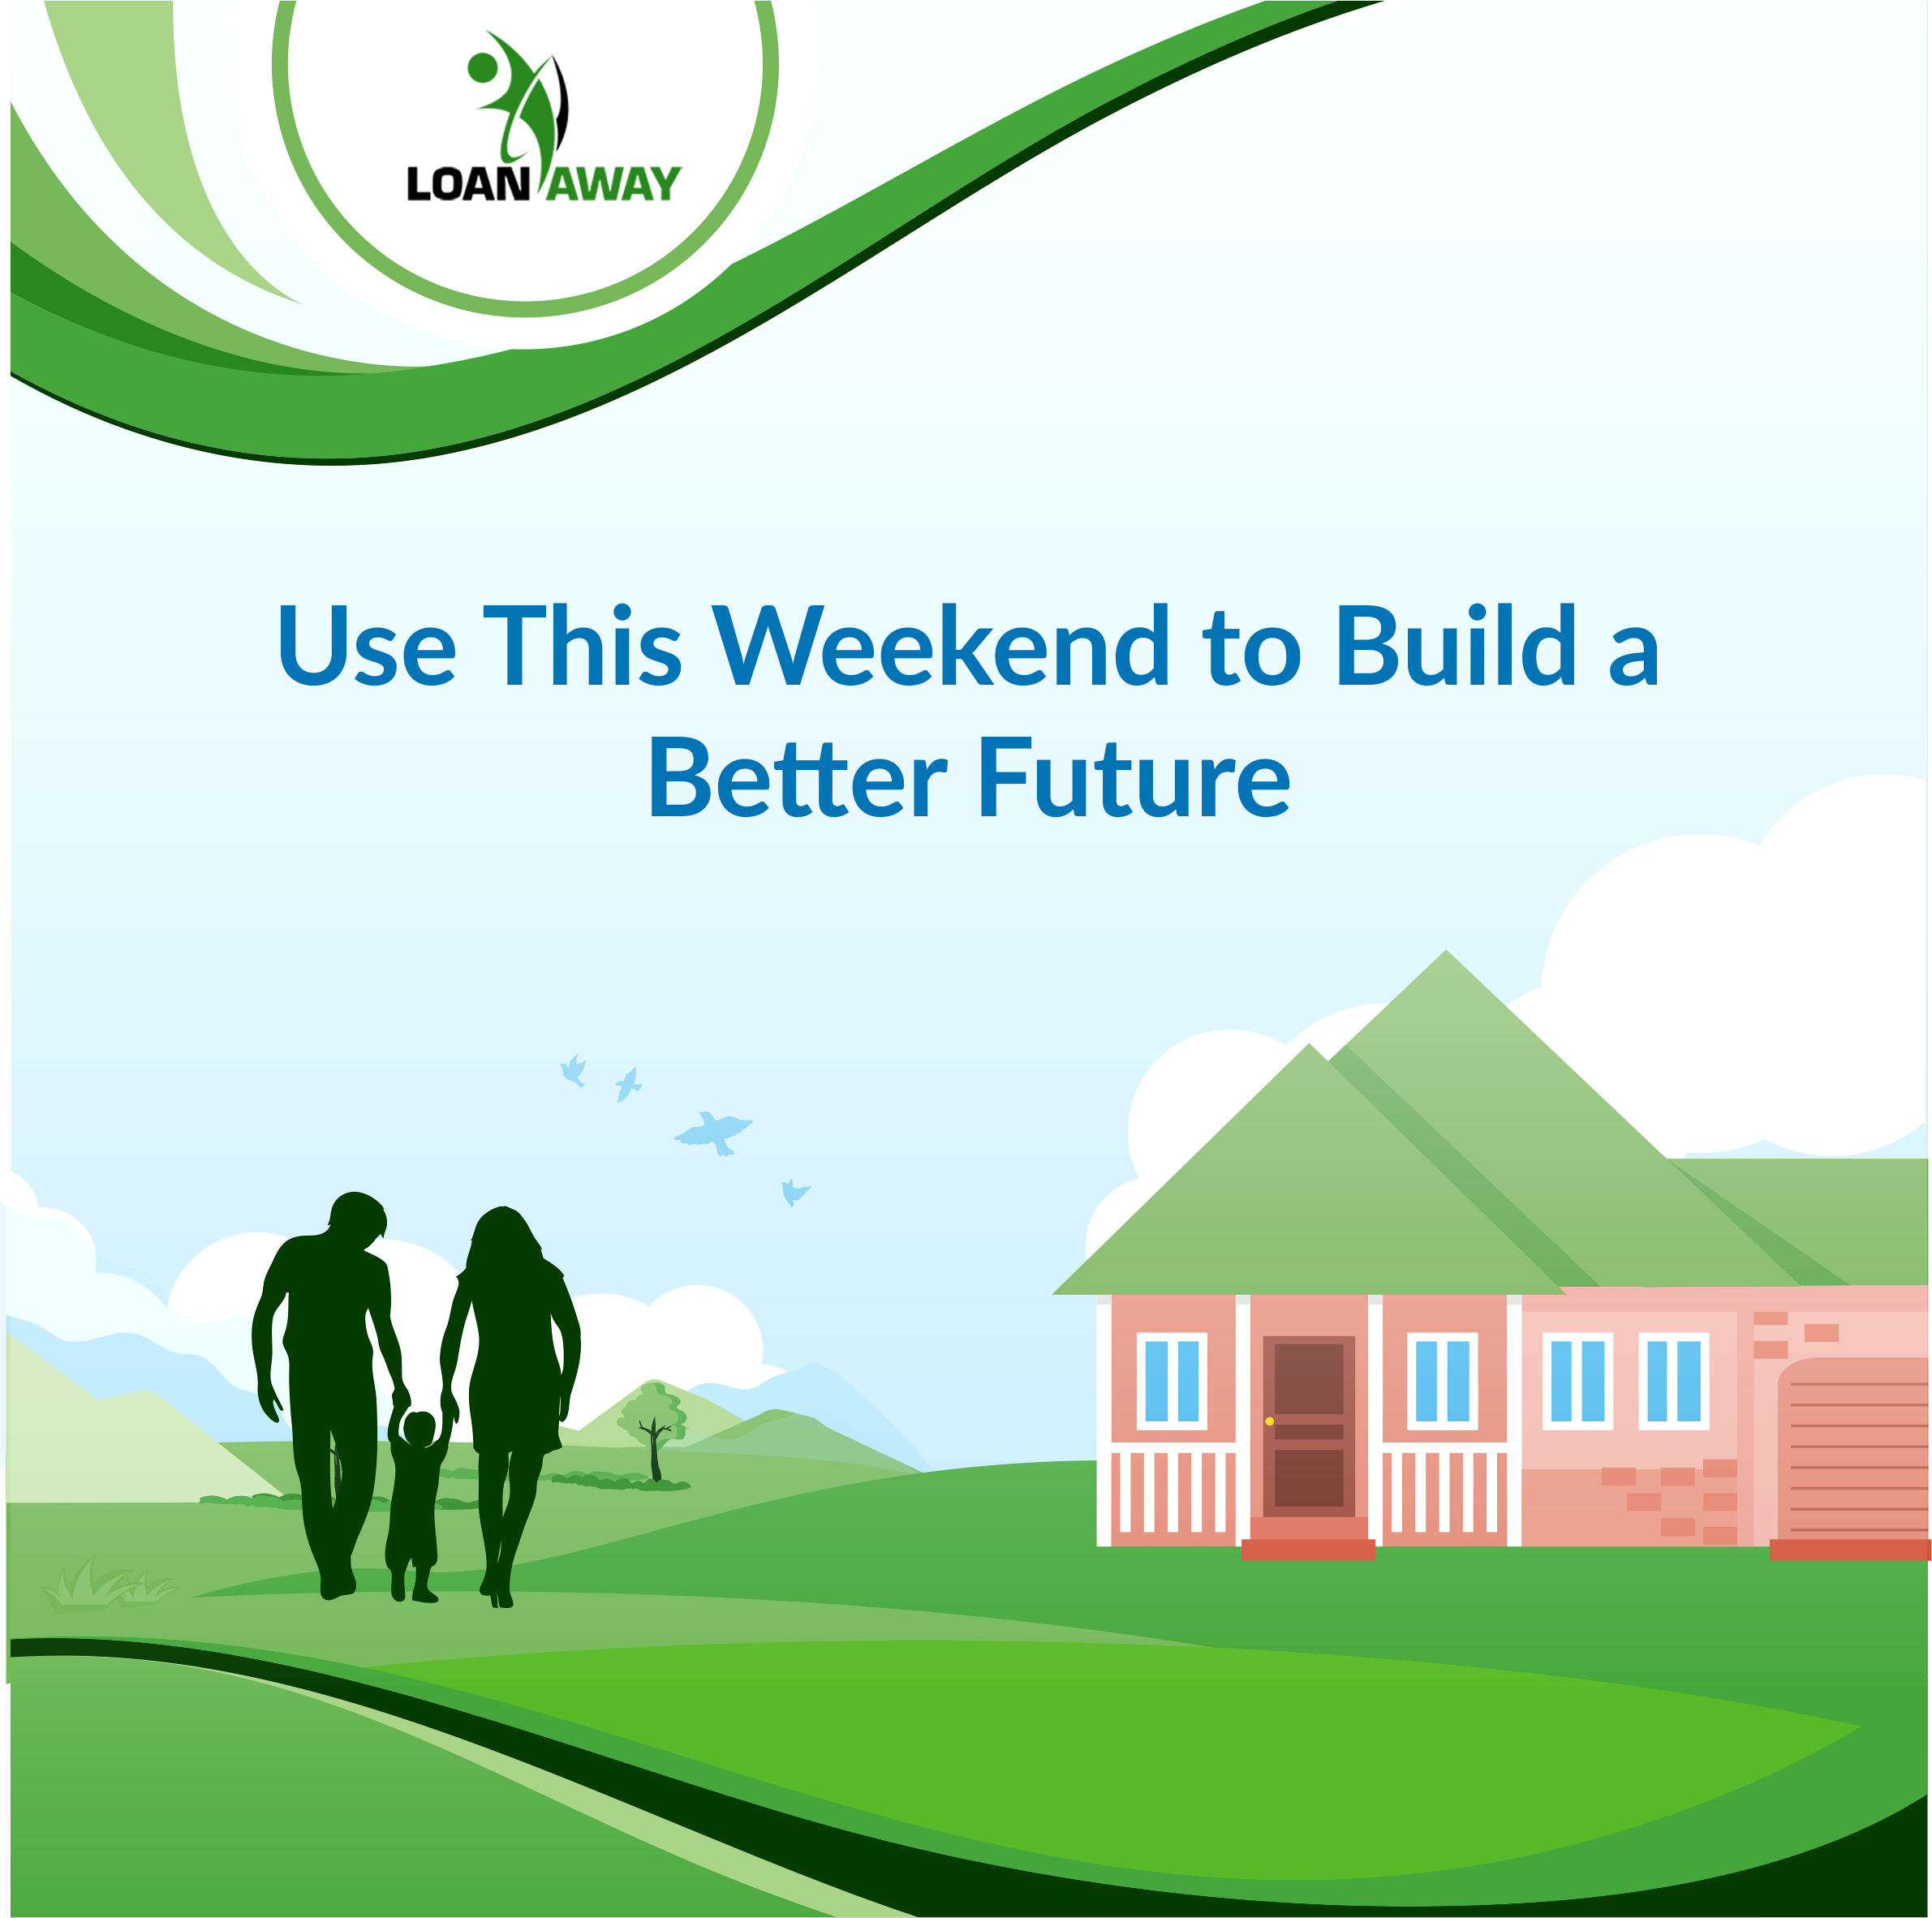 Use This Weekend to Build a Better Future